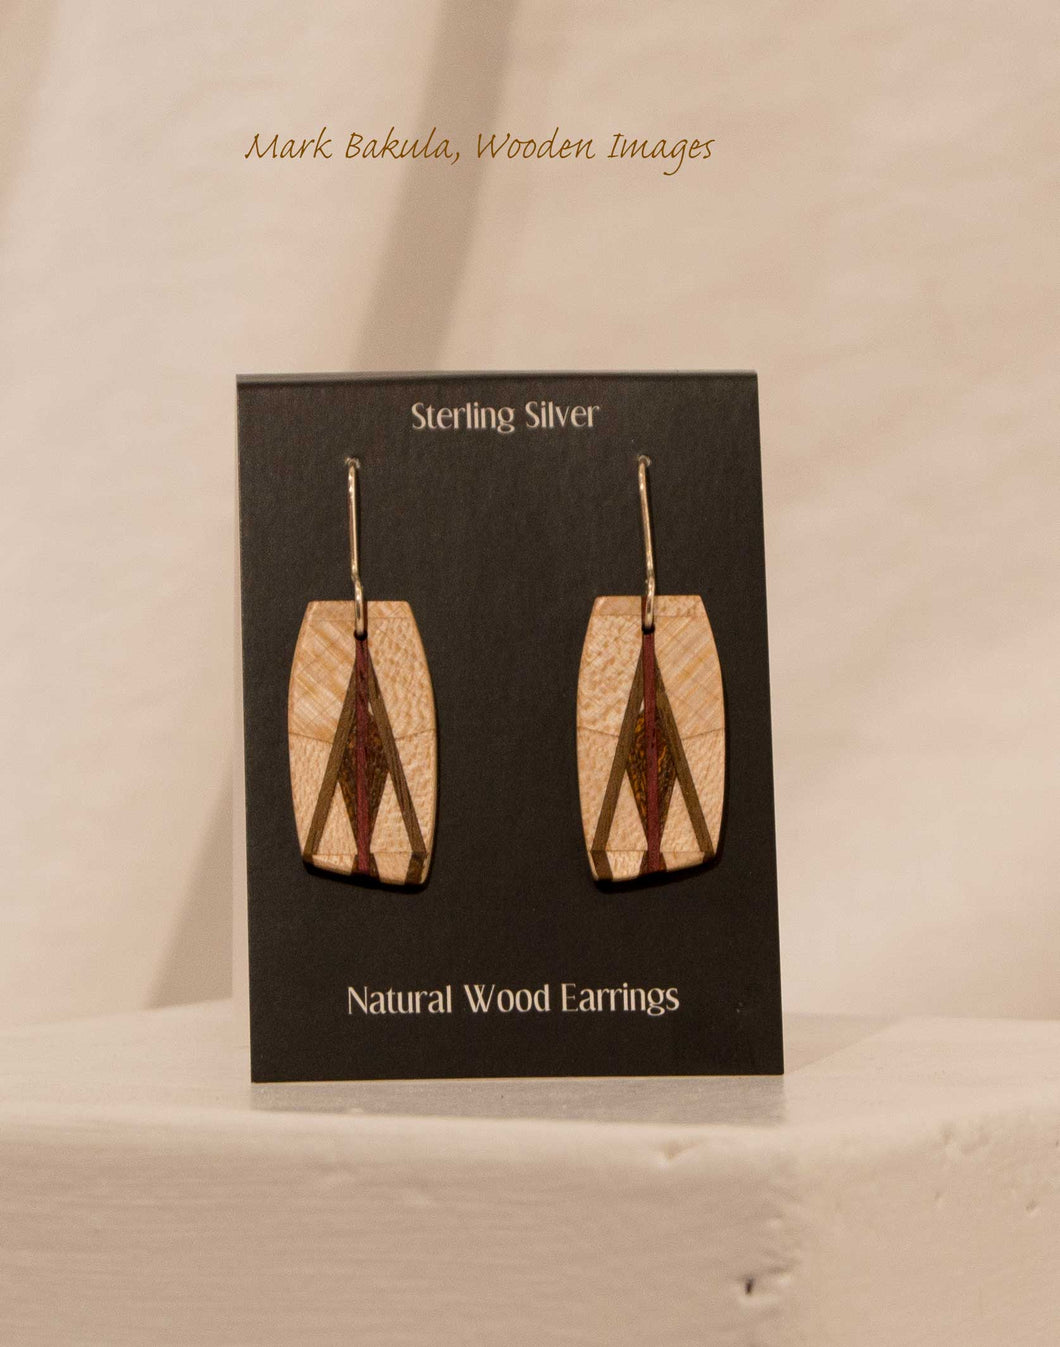 Wooden Inlay Earrings, Mark Bakula #33 Jewelry